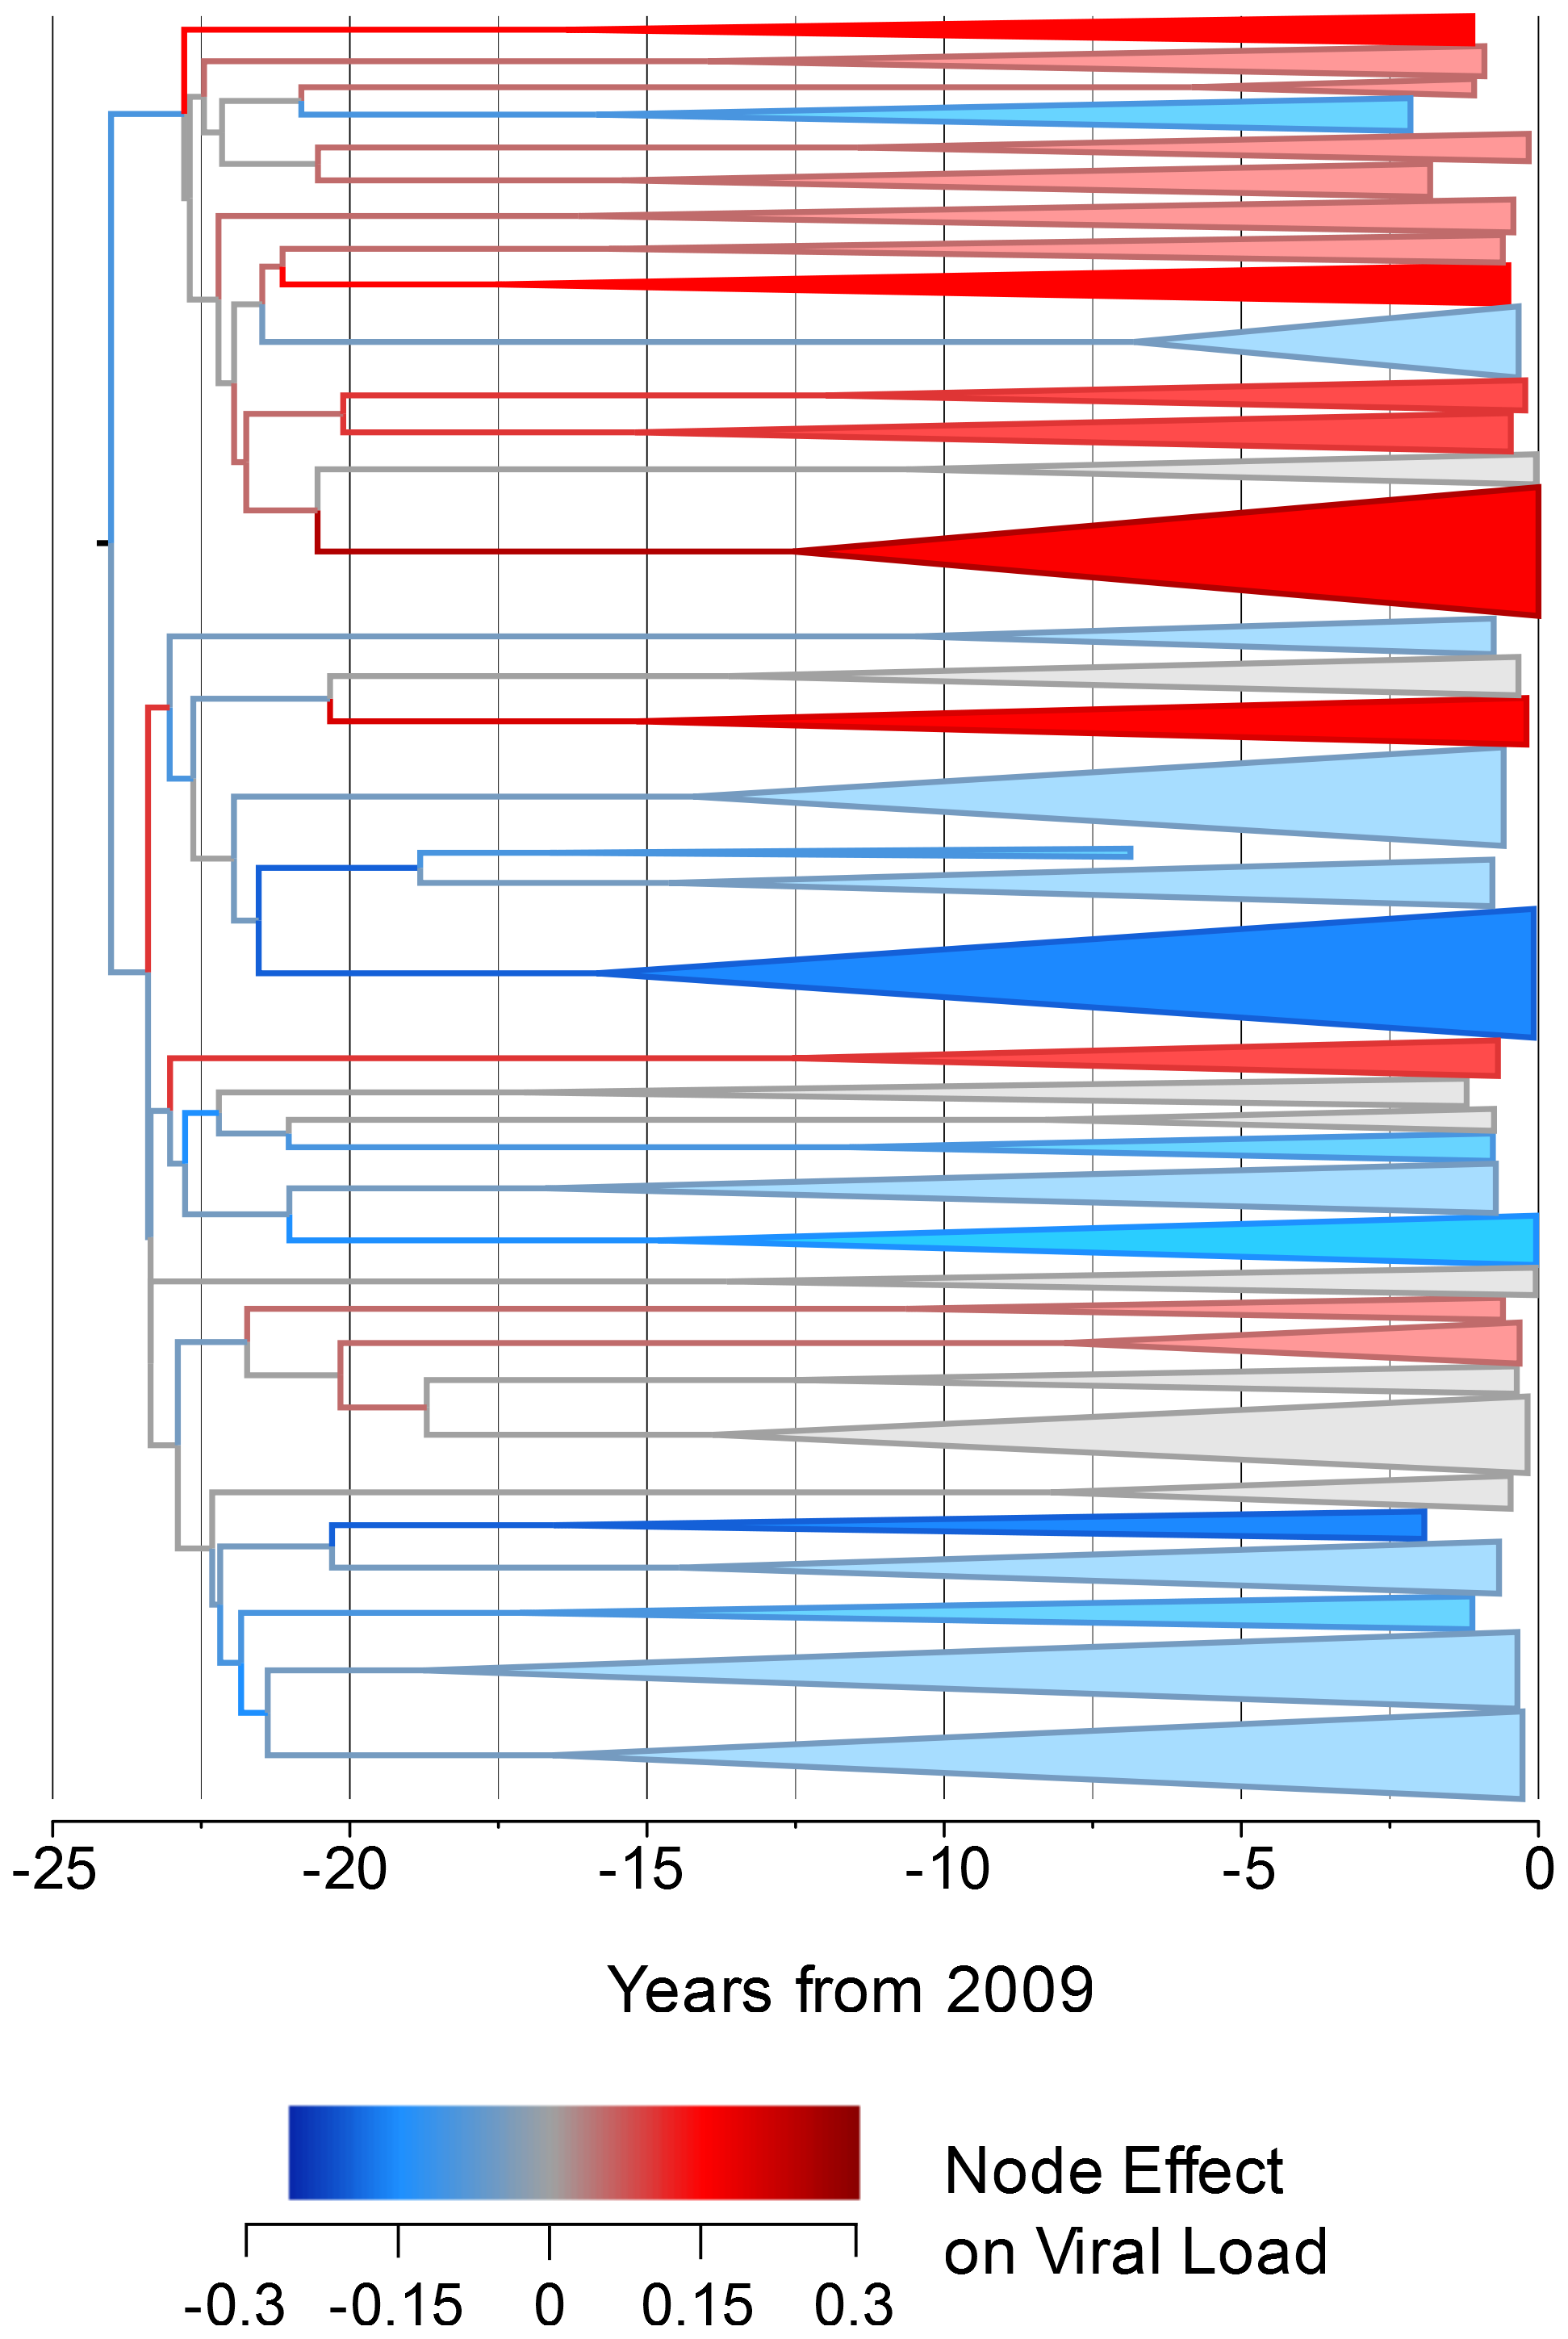 The estimated node effect plotted onto the phylogeny.